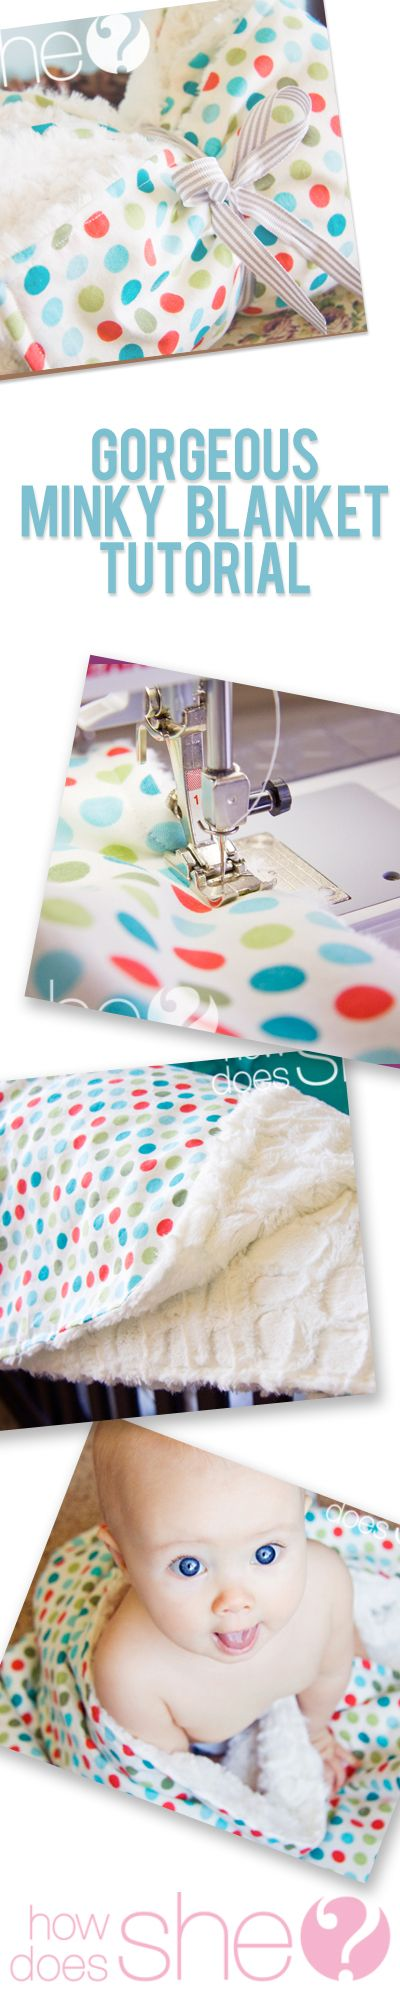 Cotton Print and Minky Baby Blanket. Great baby shower gift!